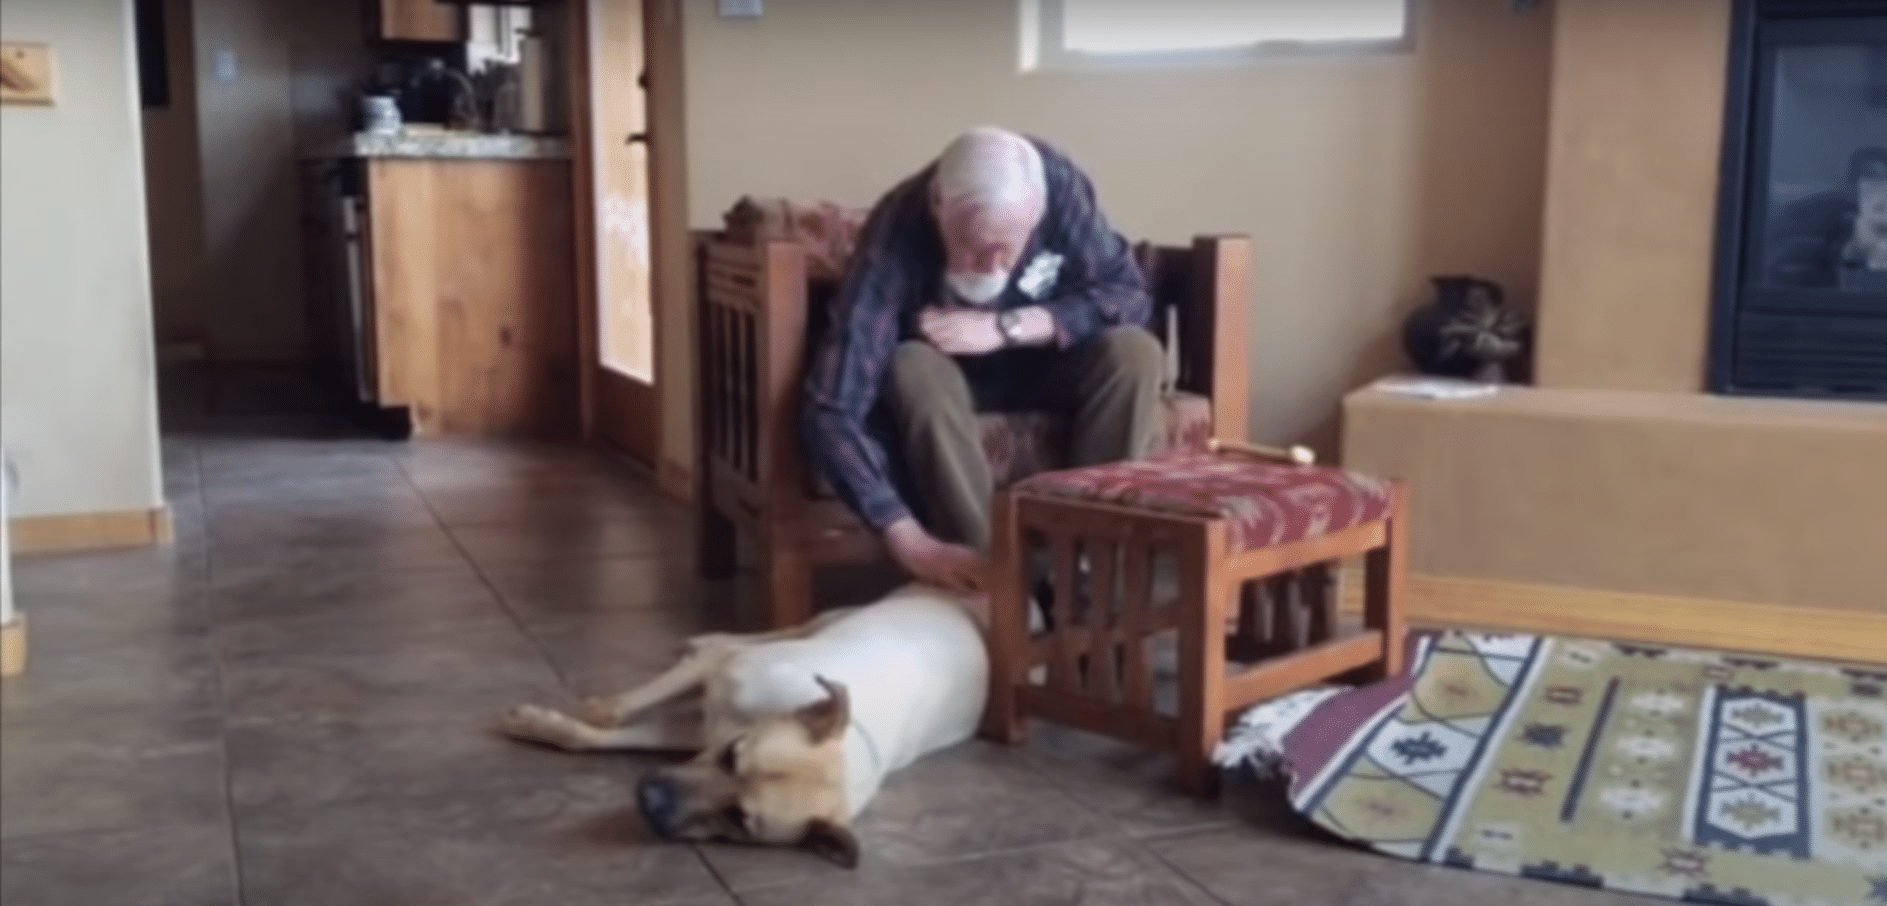 Grandma With Dementia Reunites With Dog Who Waits At Her